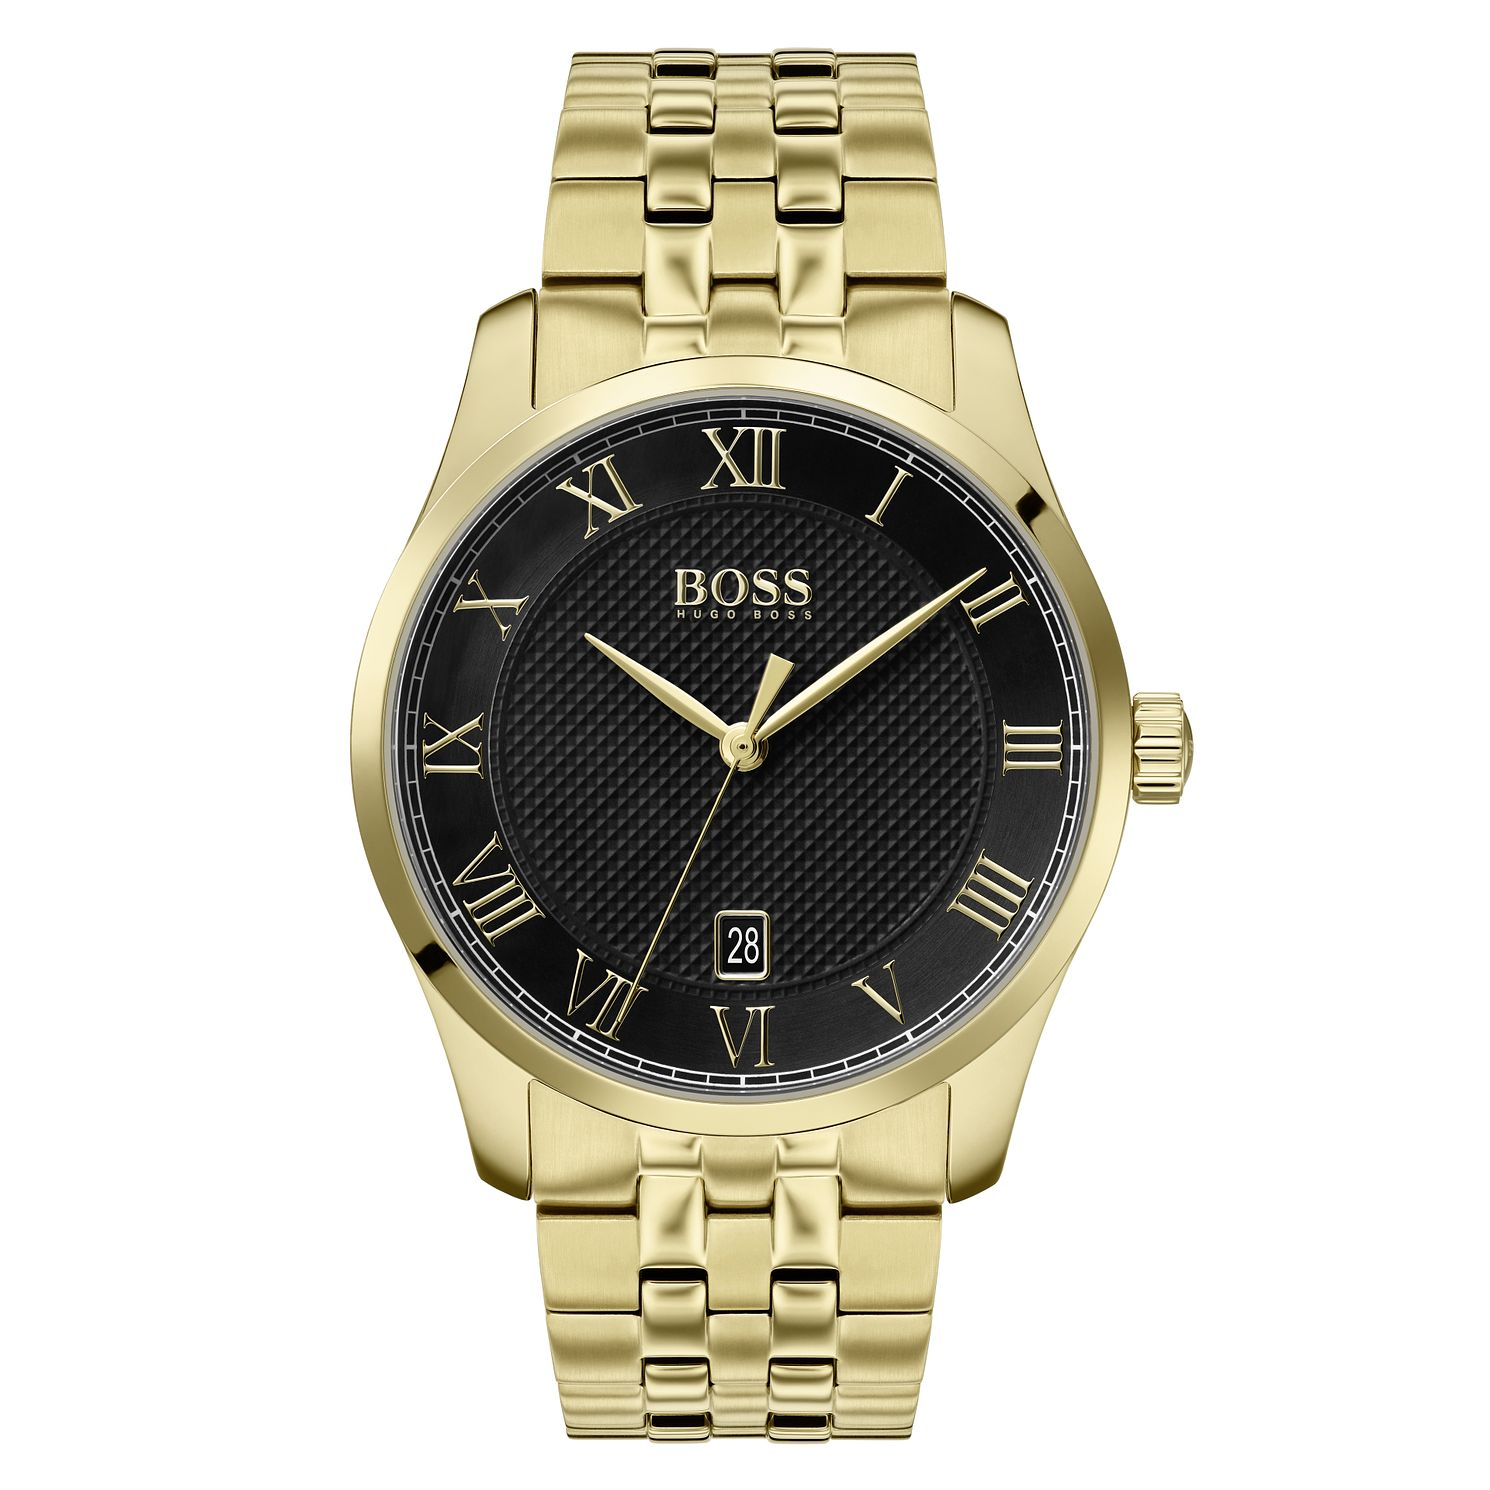 BOSS Master Men's Yellow Gold Tone Bracelet Watch - Product number 2776782